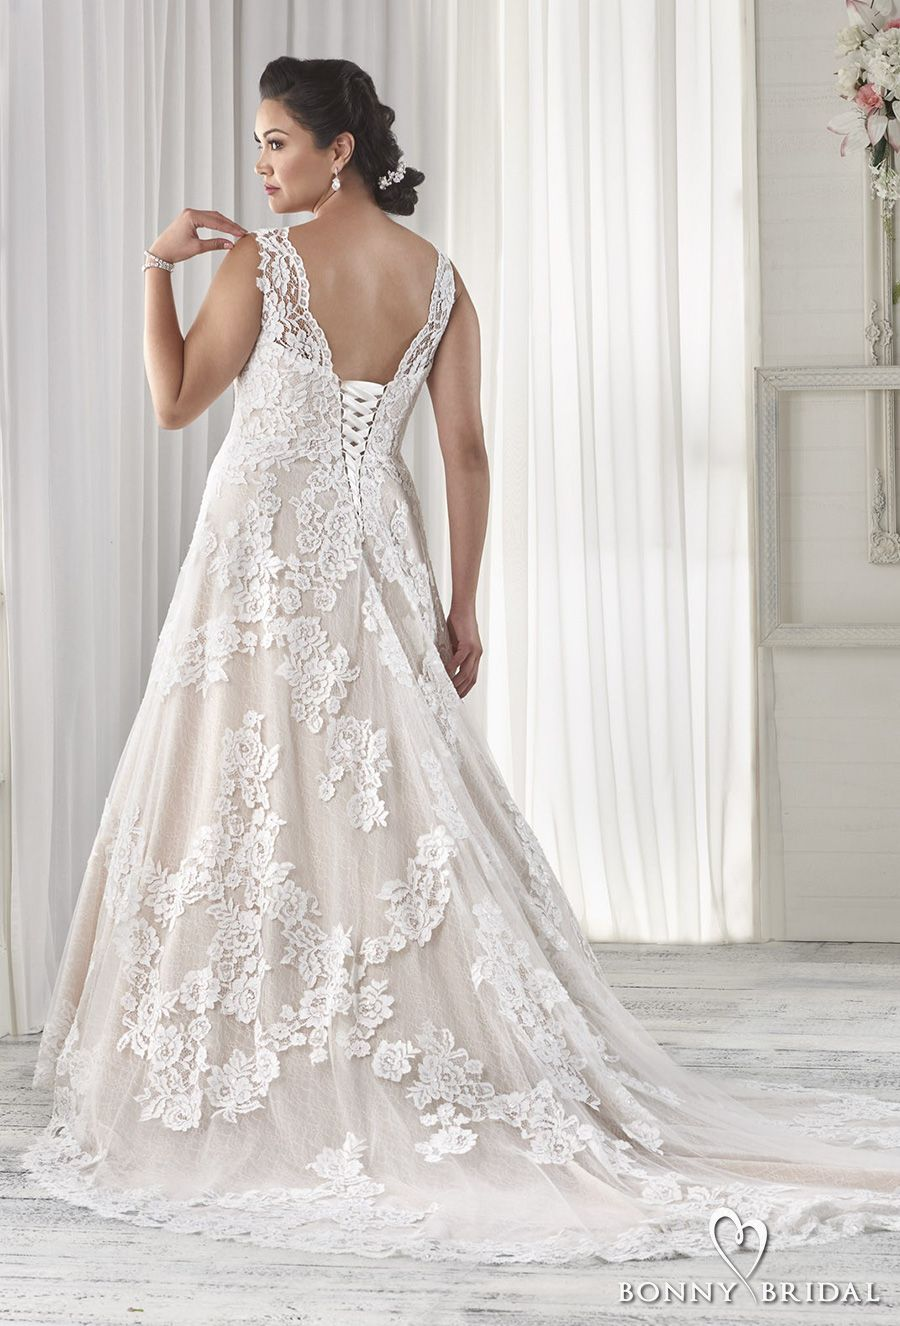 Bonny Bridal Wedding Dresses — Unforgettable Styles for Every Bride ...